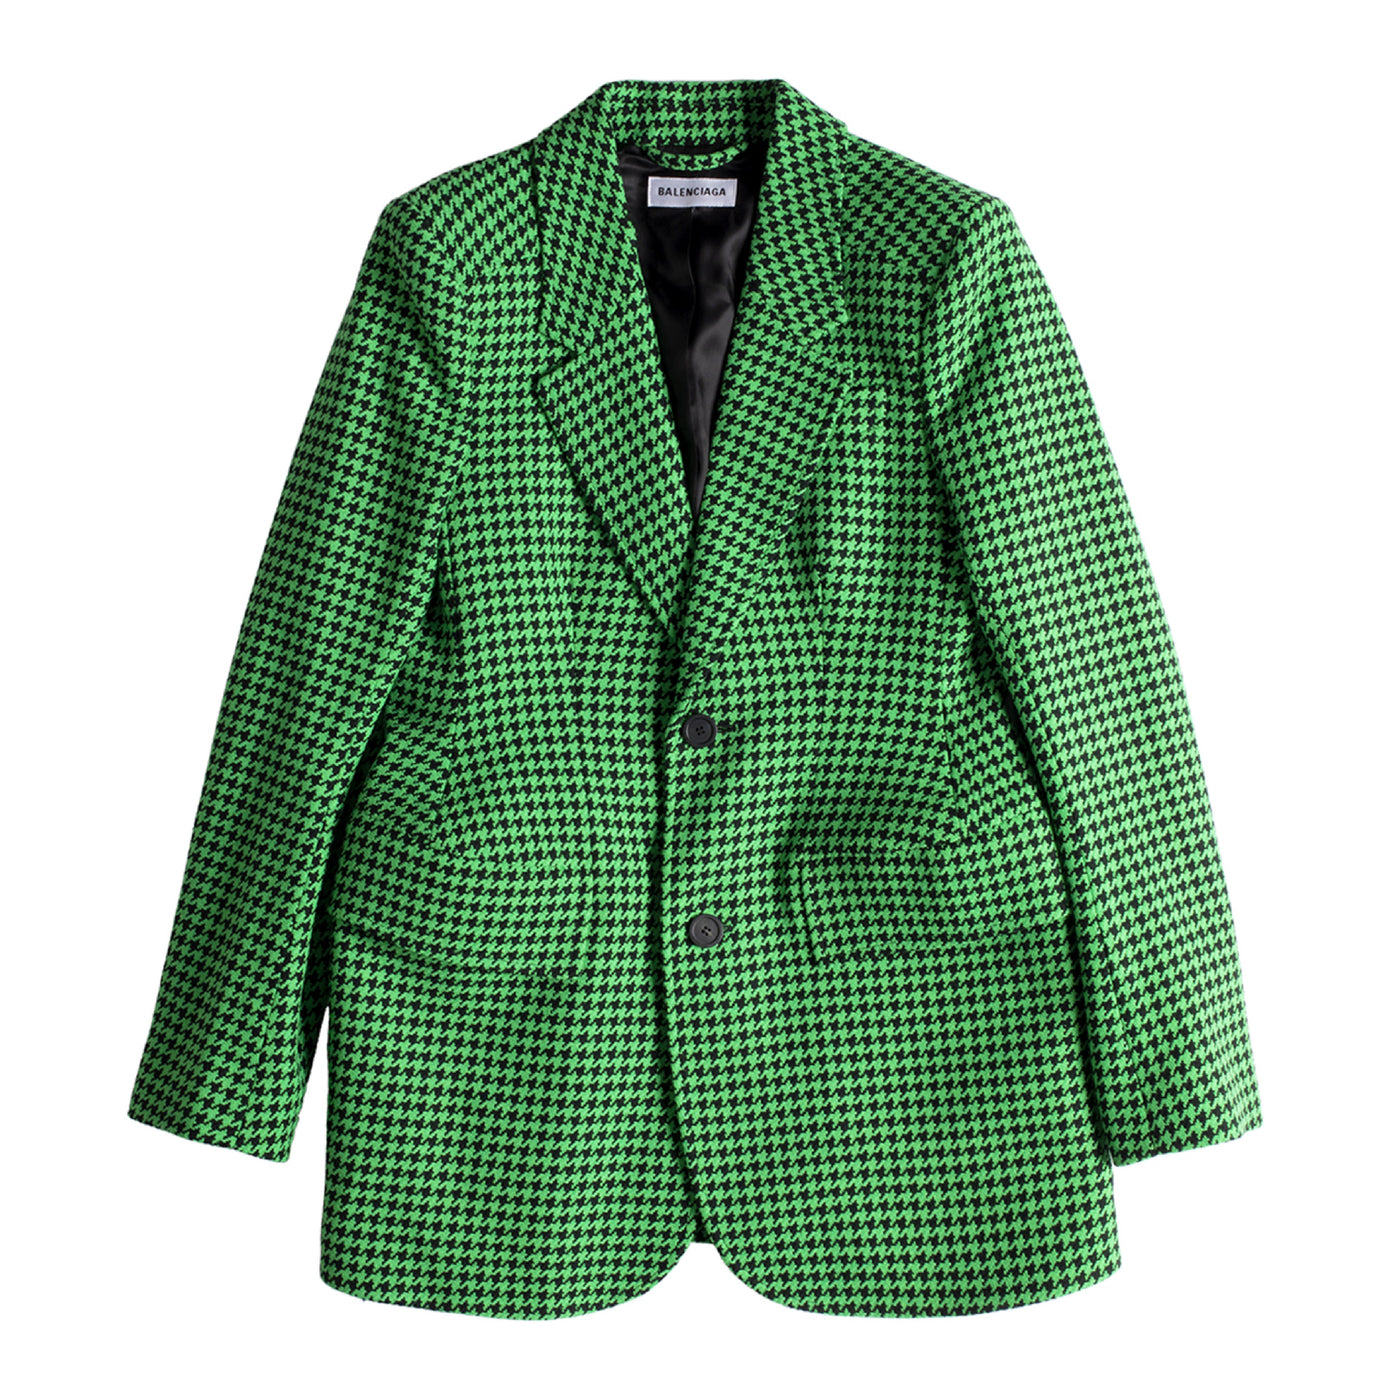 Load image into Gallery viewer, BALENCIAGA HOURGLASS BLAZER GREEN